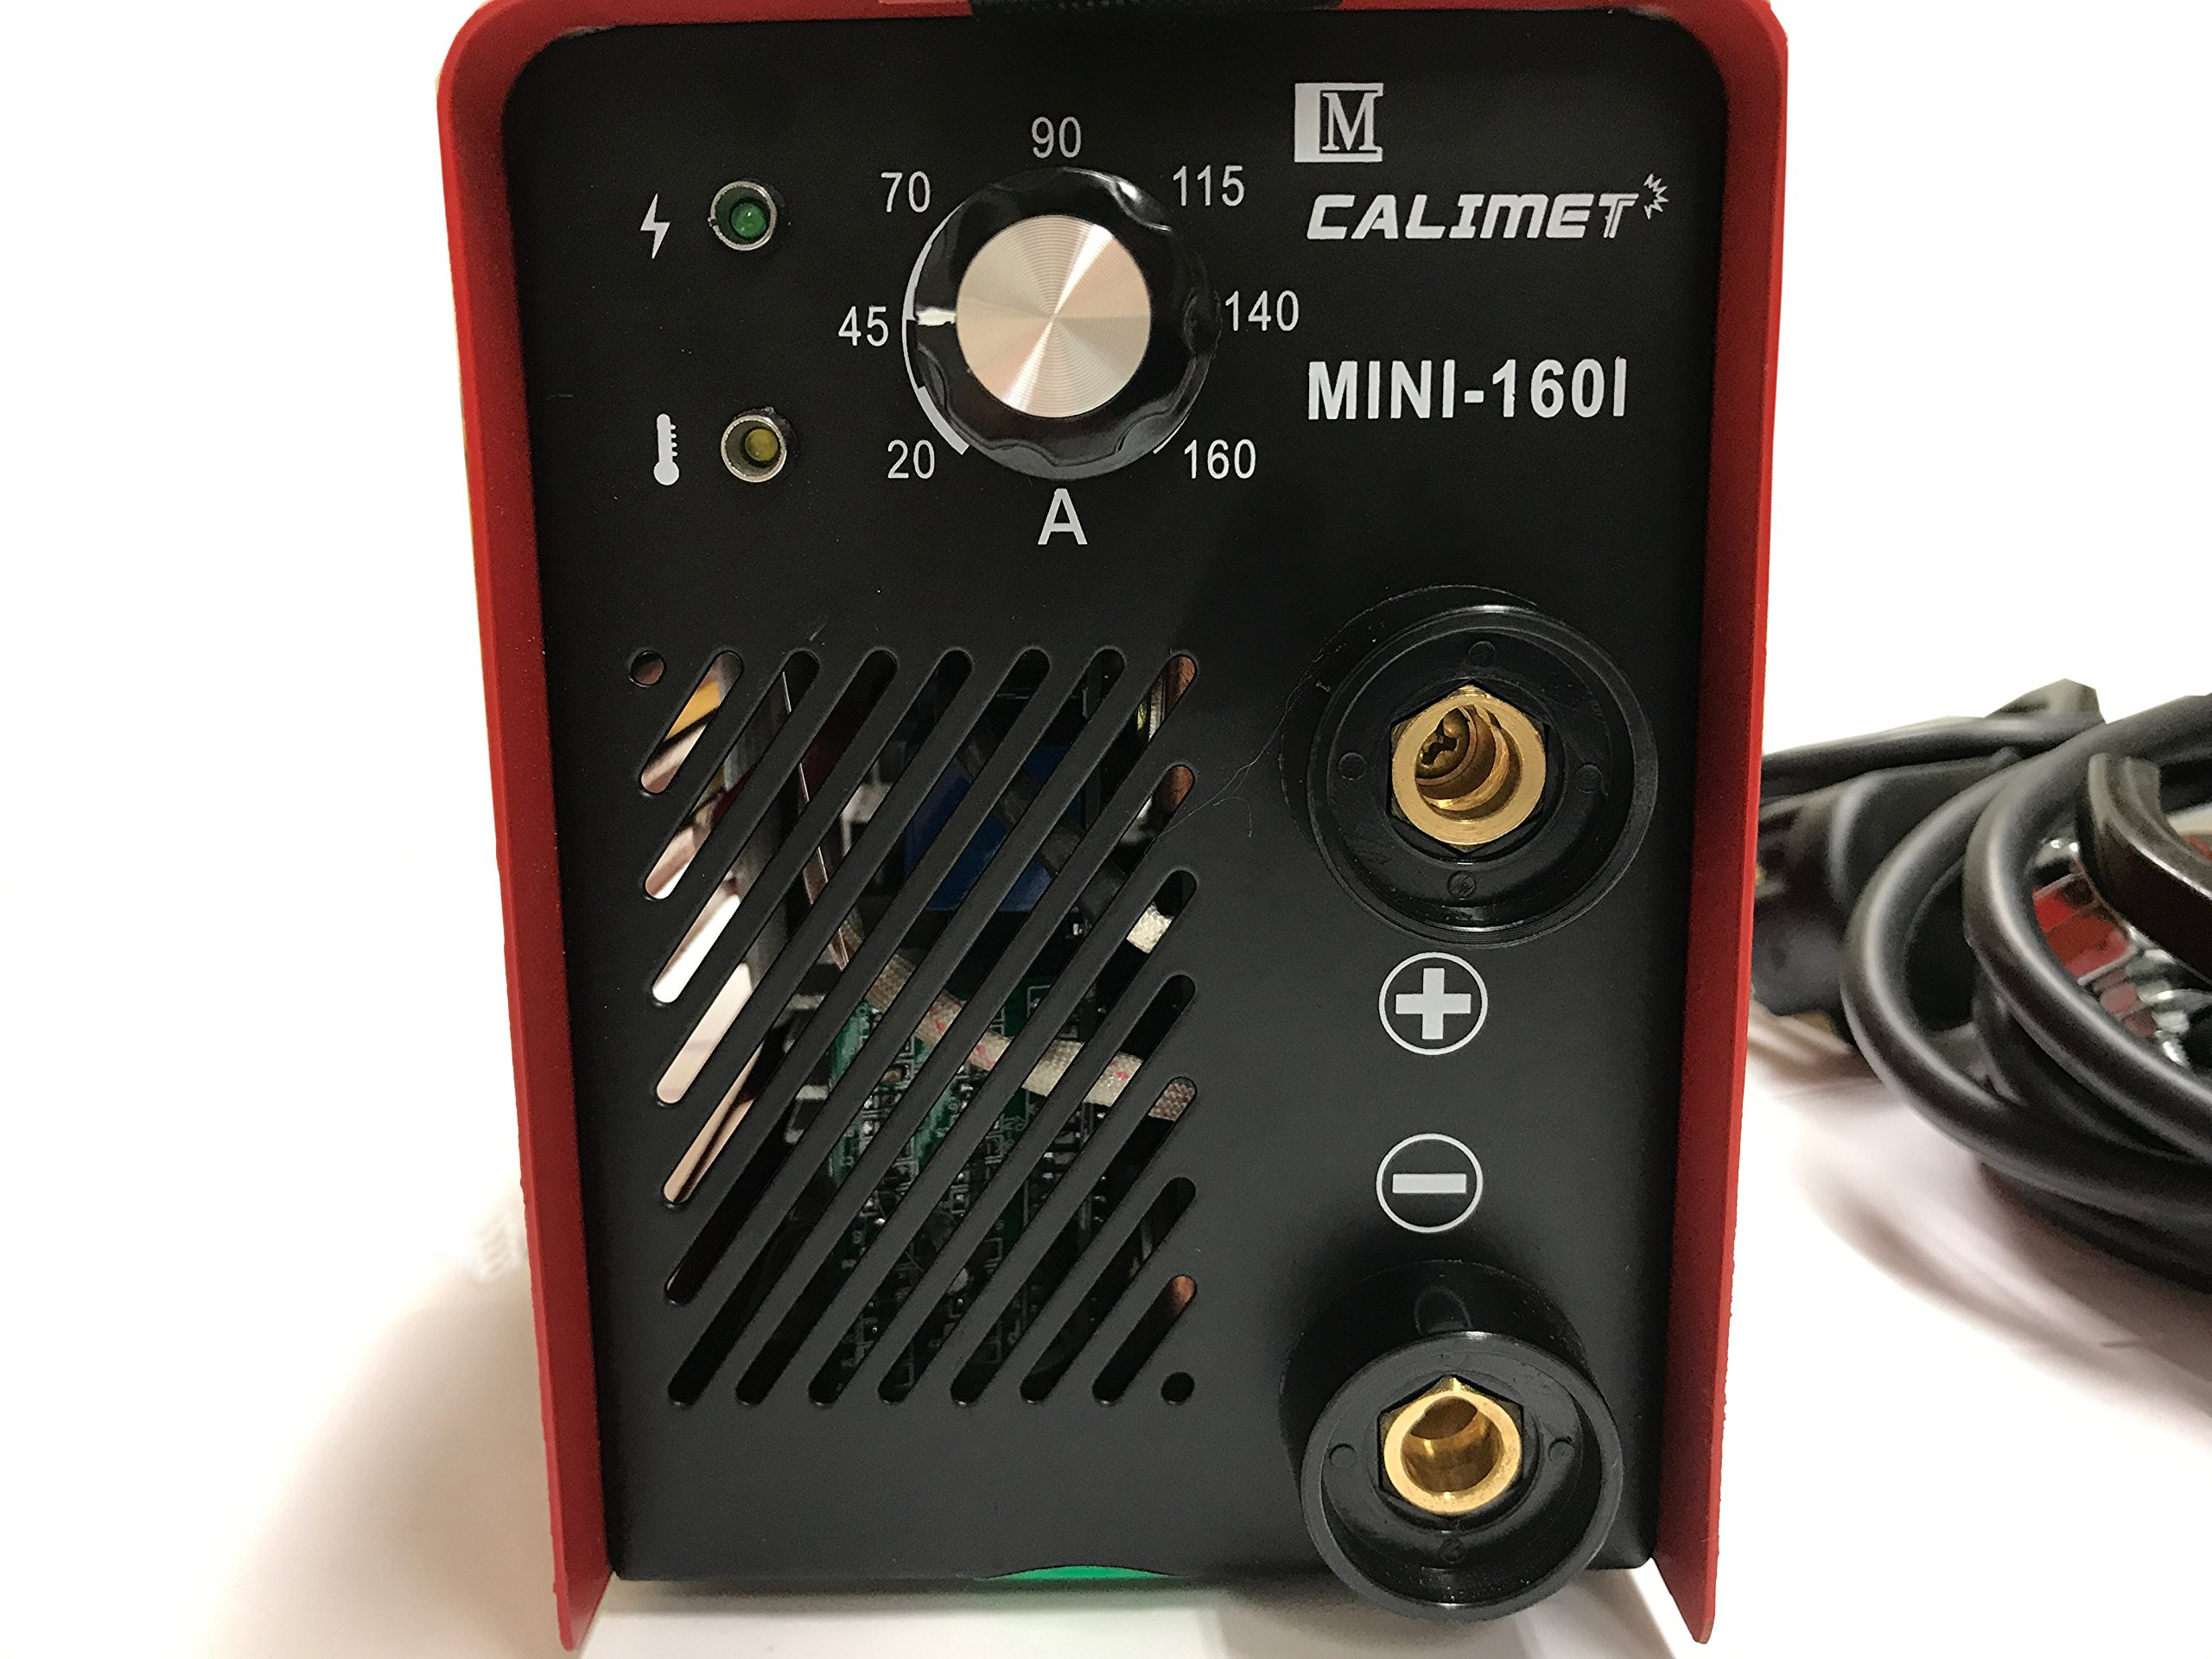 Calimetco Welding Machine Welder Mini/Light 8LB,Powerful, Long-lasting Work, Dual Voltage 115/230V, 160AMP. Great for Home and Professionals Use by Calimetco (Image #4)